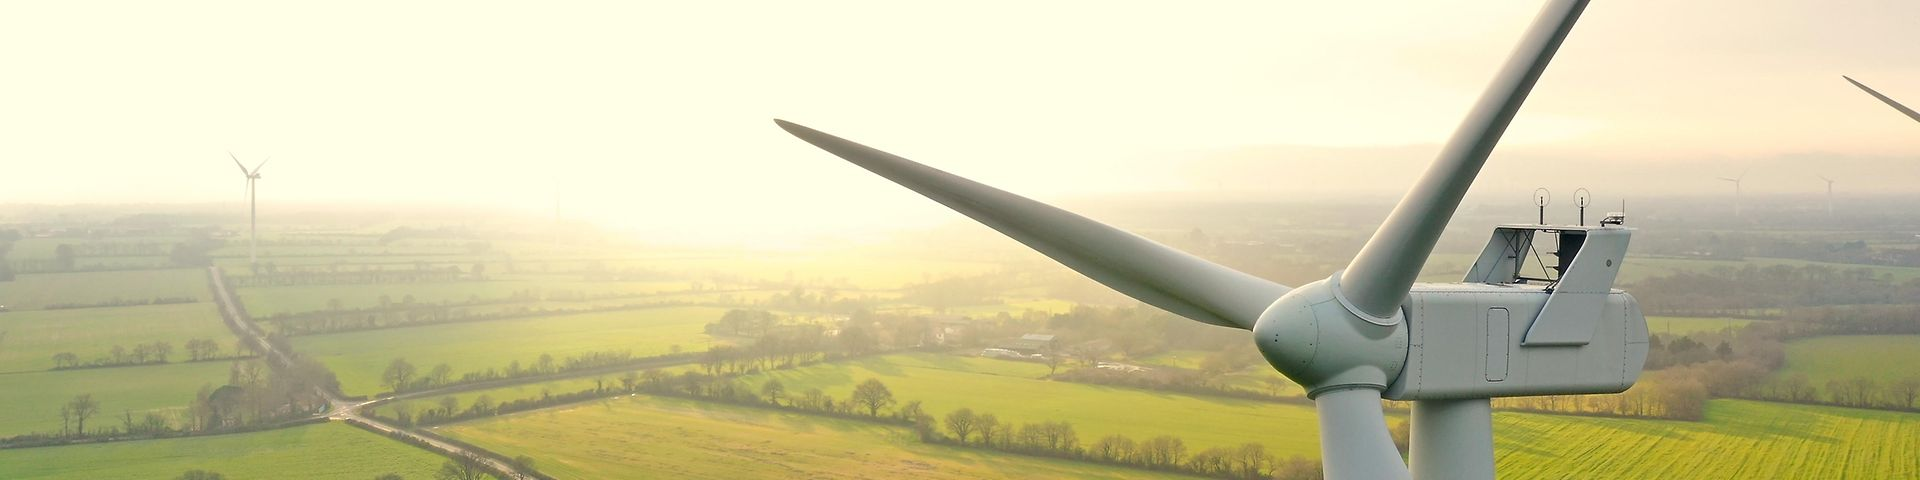 Windkraft Energie Ökostrom